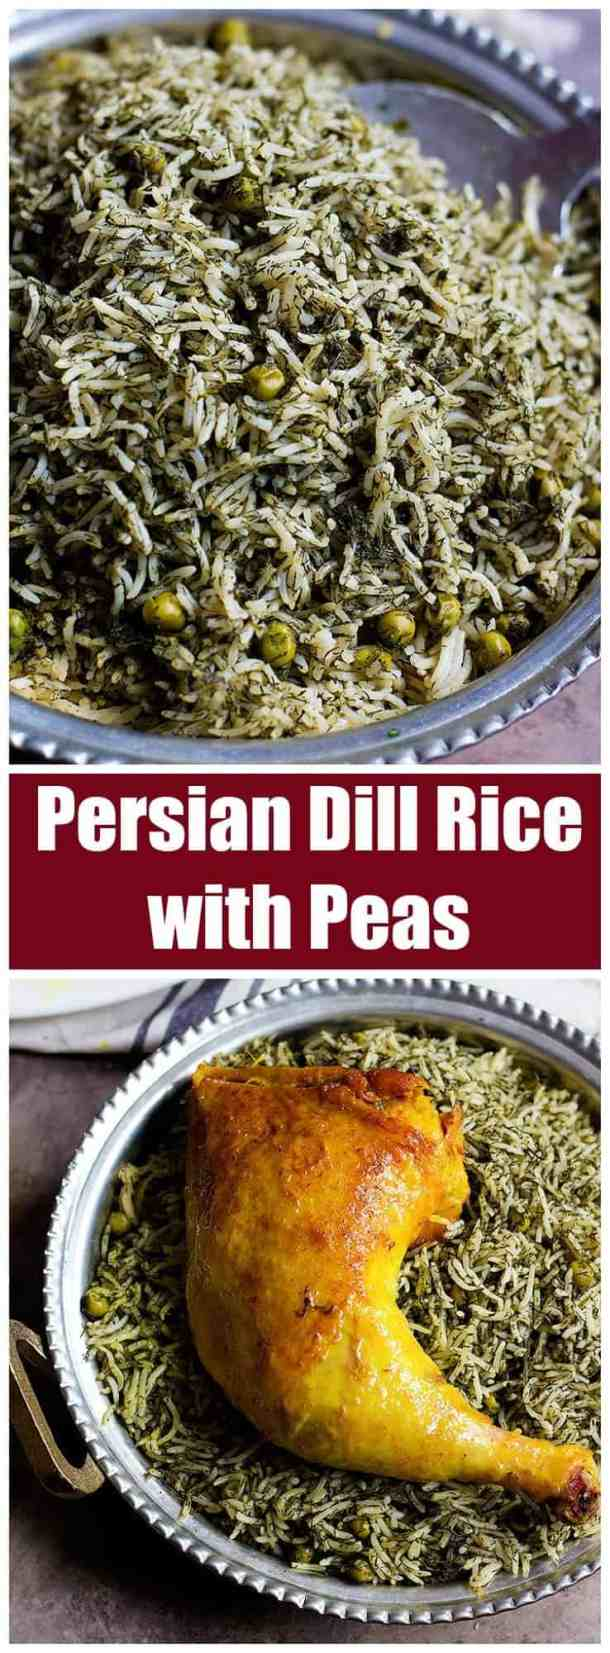 Persian Dill Rice with Peas | Dill Rice | Rice and Peas | Persian Recipes | Persian Cuisine | Persian Dishes | Rice Recipes | Green Rice | Middle Eastern Rice | Mediterranean Rice | Herb Rice | One Pot Rice | UnicornsintheKitchen.com